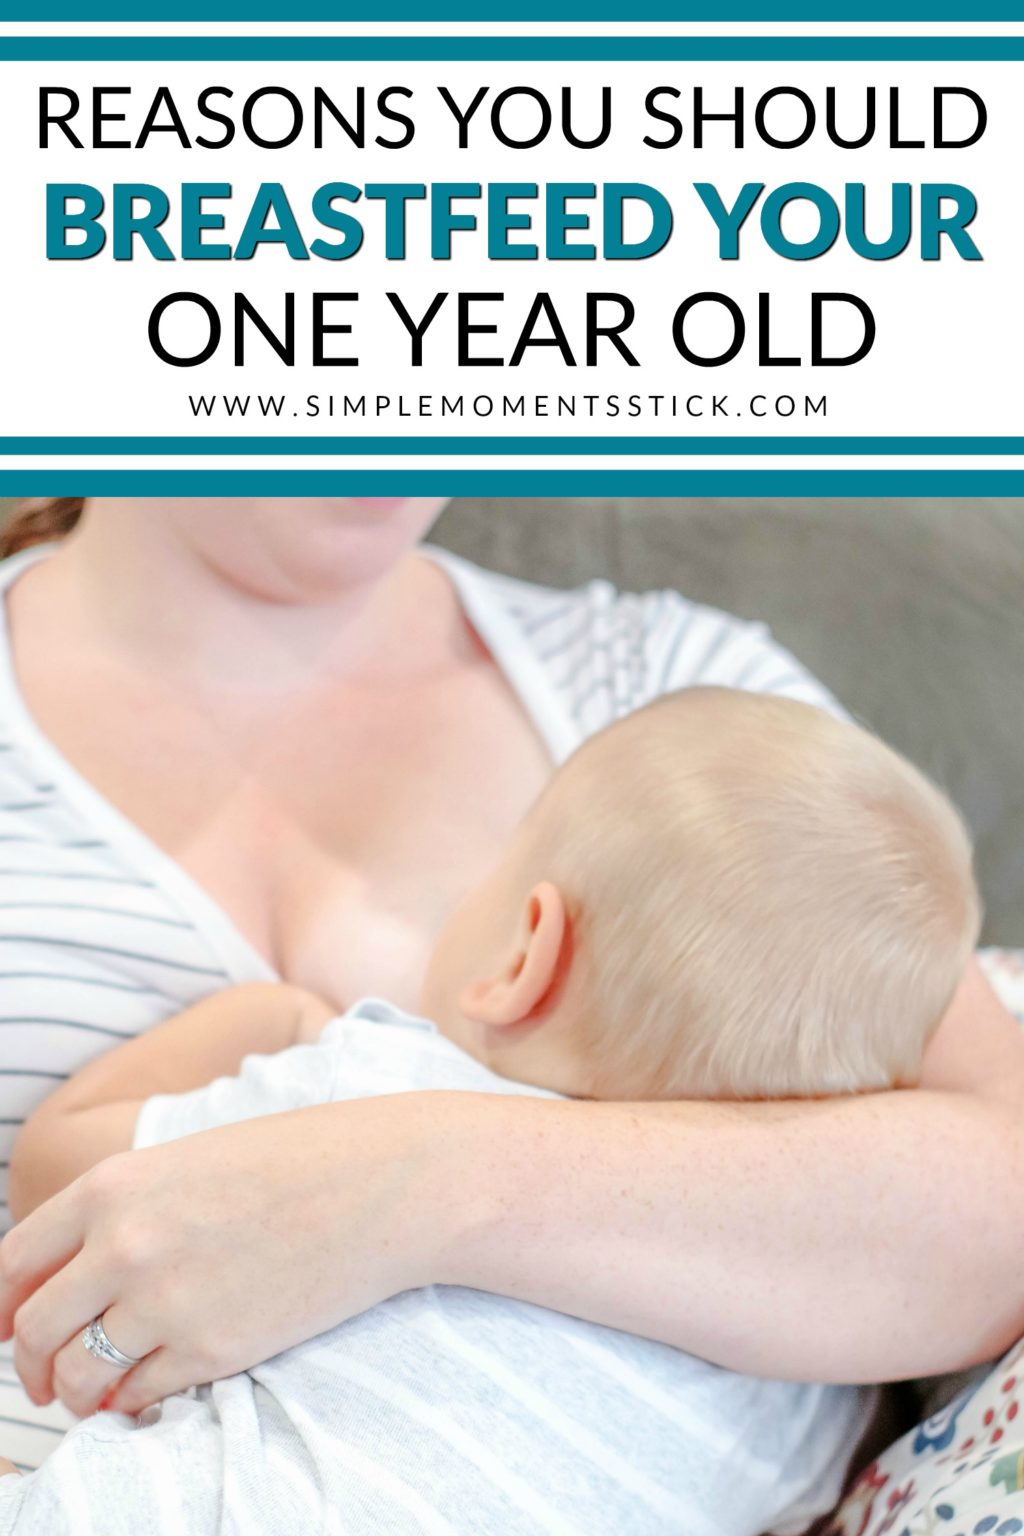 #ad Reasons for breastfeeding a one year old